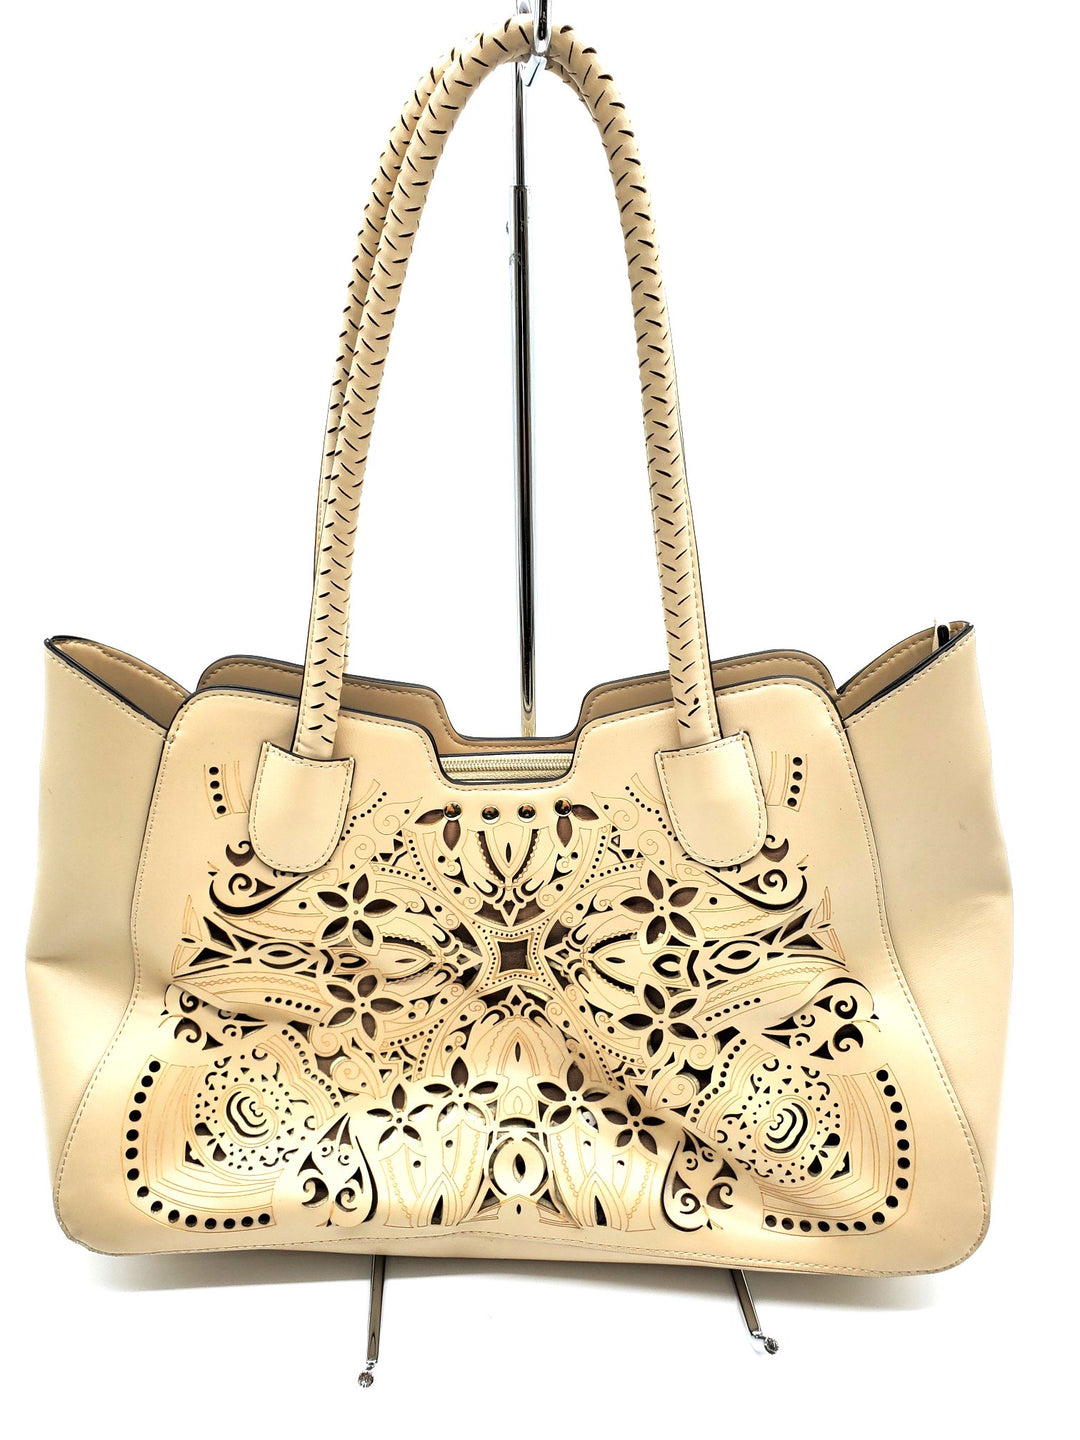 Primary Photo - BRAND: NANETTE LEPORE <BR>STYLE: HANDBAG <BR>COLOR: BEIGE <BR>SIZE: SMALL <BR>SKU: 262-262101-1167<BR>AS IS